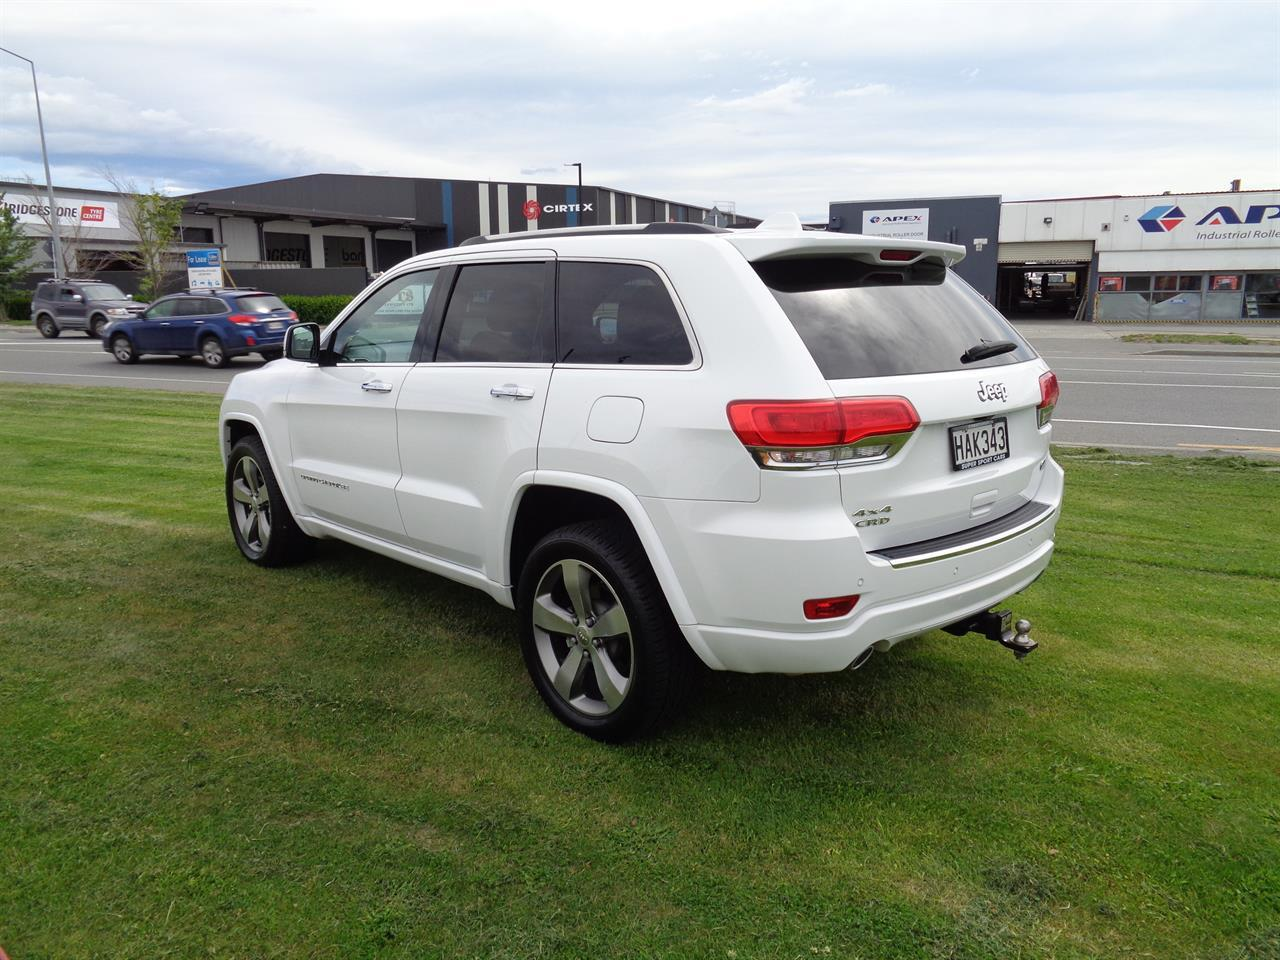 image-4, 2013 Jeep Grand Cherokee 3.0L V6 CRD OVERLAND at Christchurch